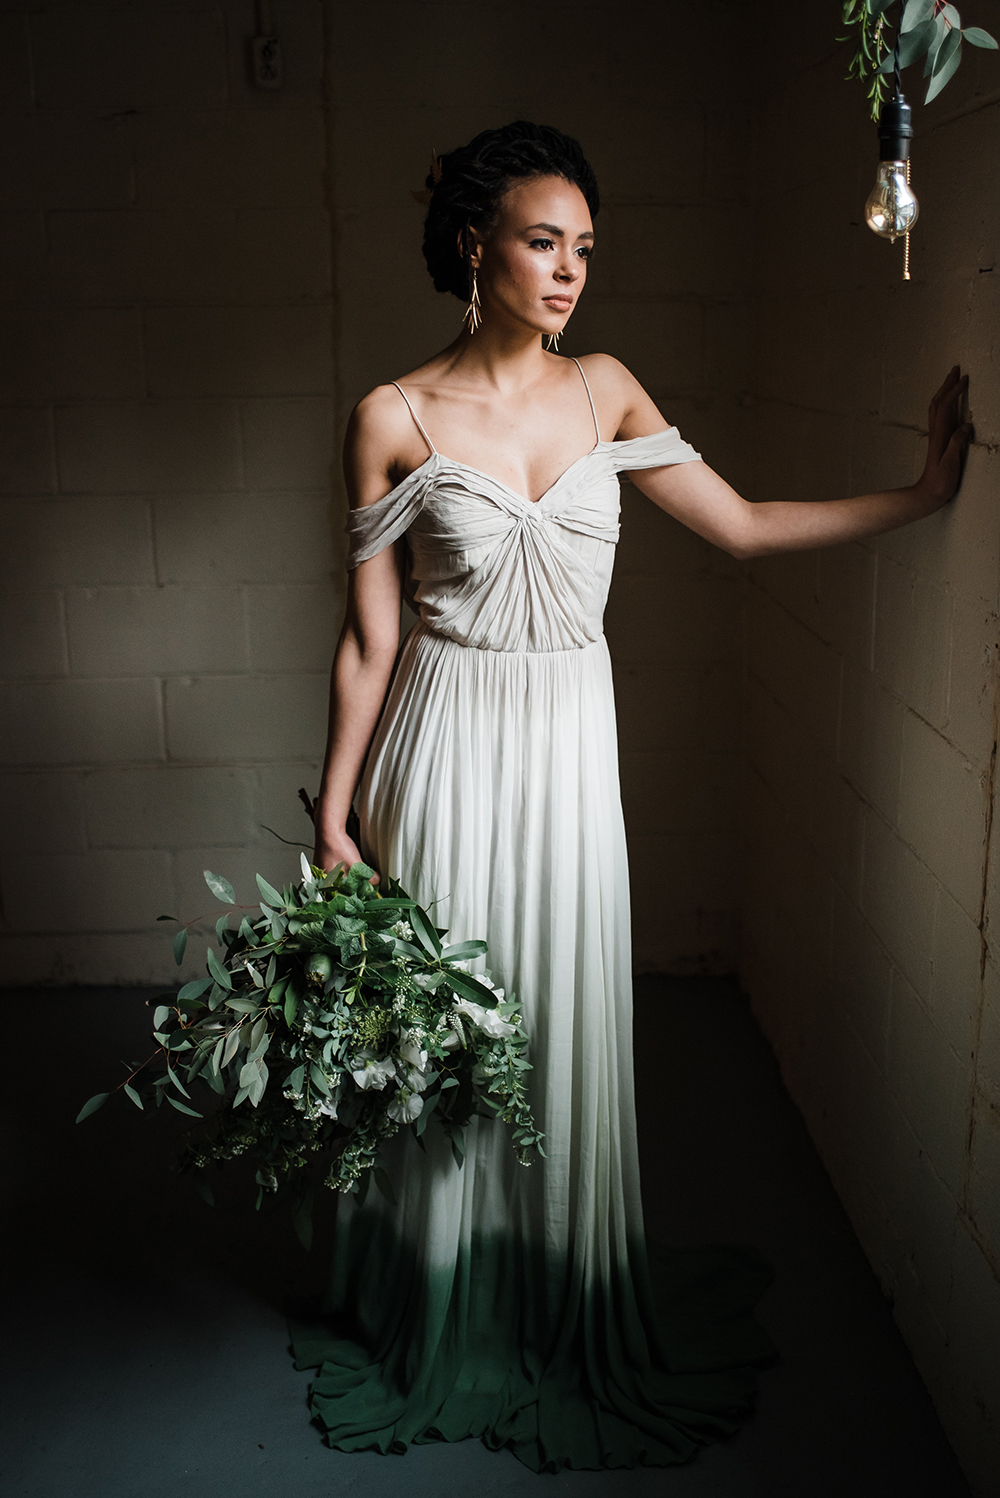 Industrial Candlelit Wedding Inspiration - photo by Dawn Derbyshire Photography https://ruffledblog.com/industrial-candlelit-wedding-inspiration